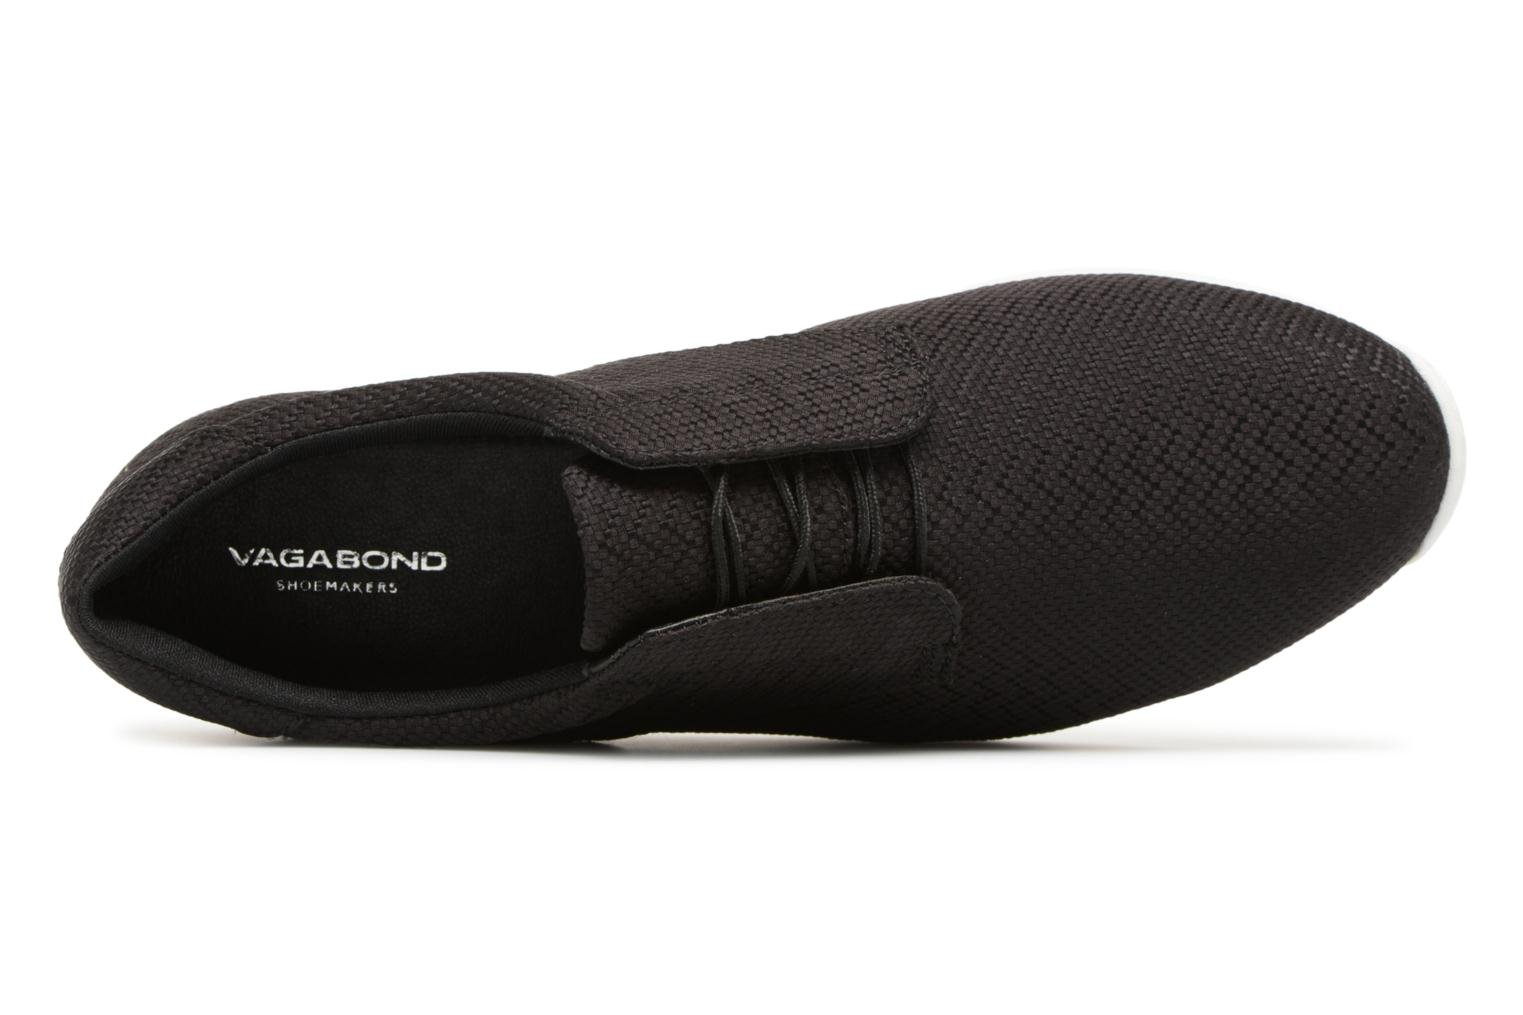 Baskets Vagabond Shoemakers Kasai 2.0 4525-080 Noir vue gauche